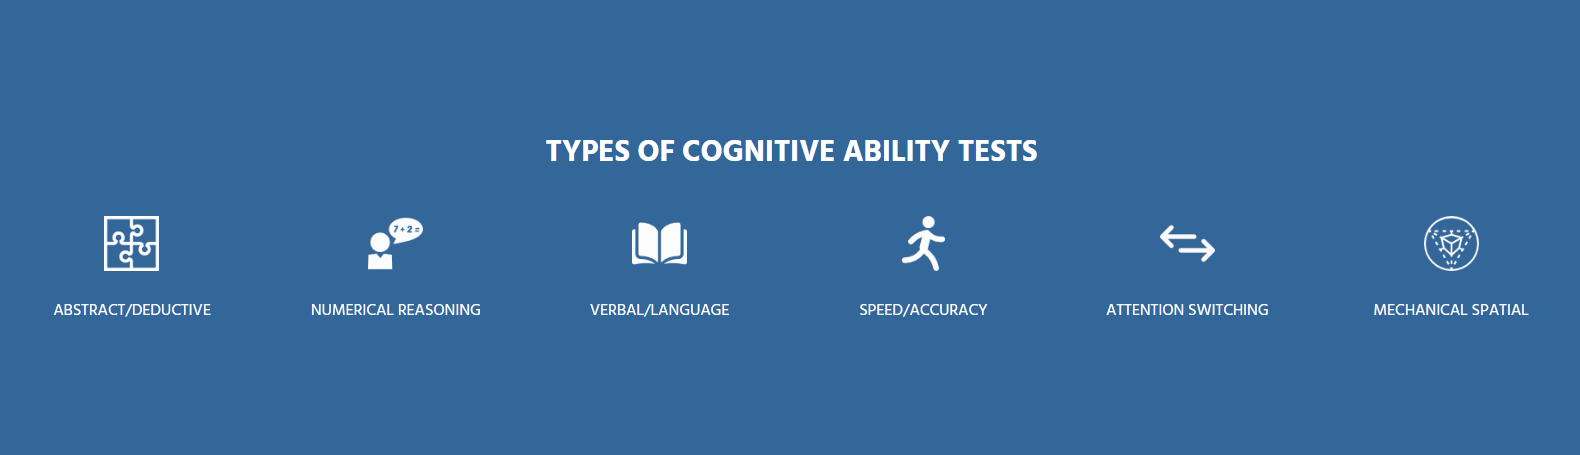 Cognitive Ability Test Types